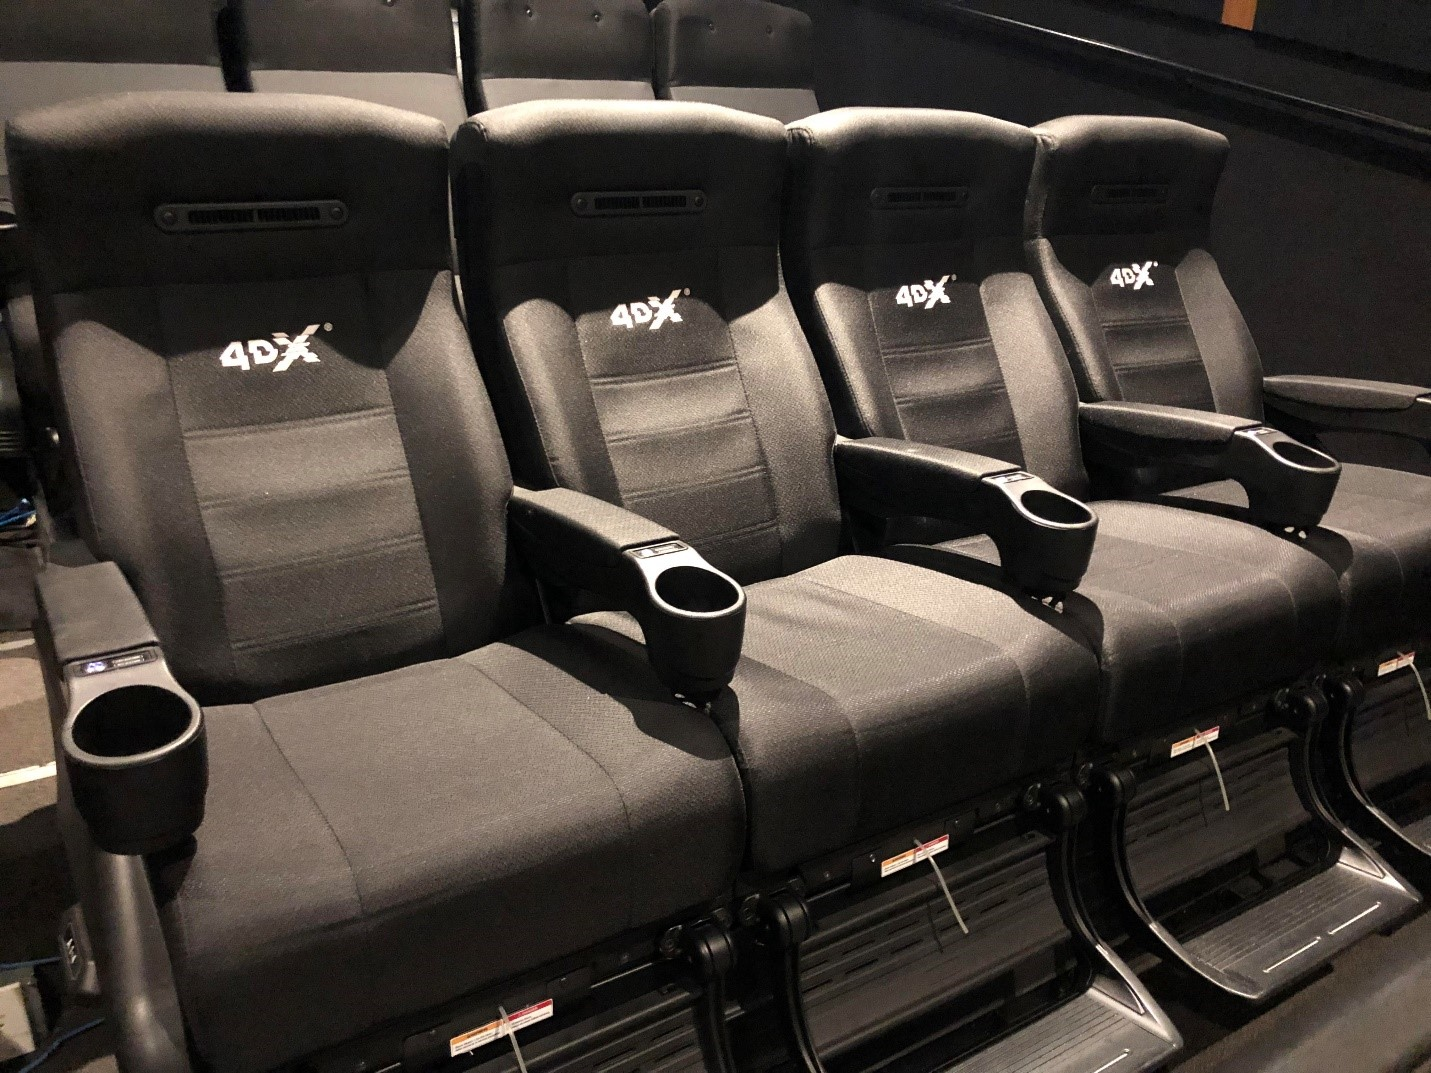 The 4DX experience features motion enabled chairs with added effects like wind and water.